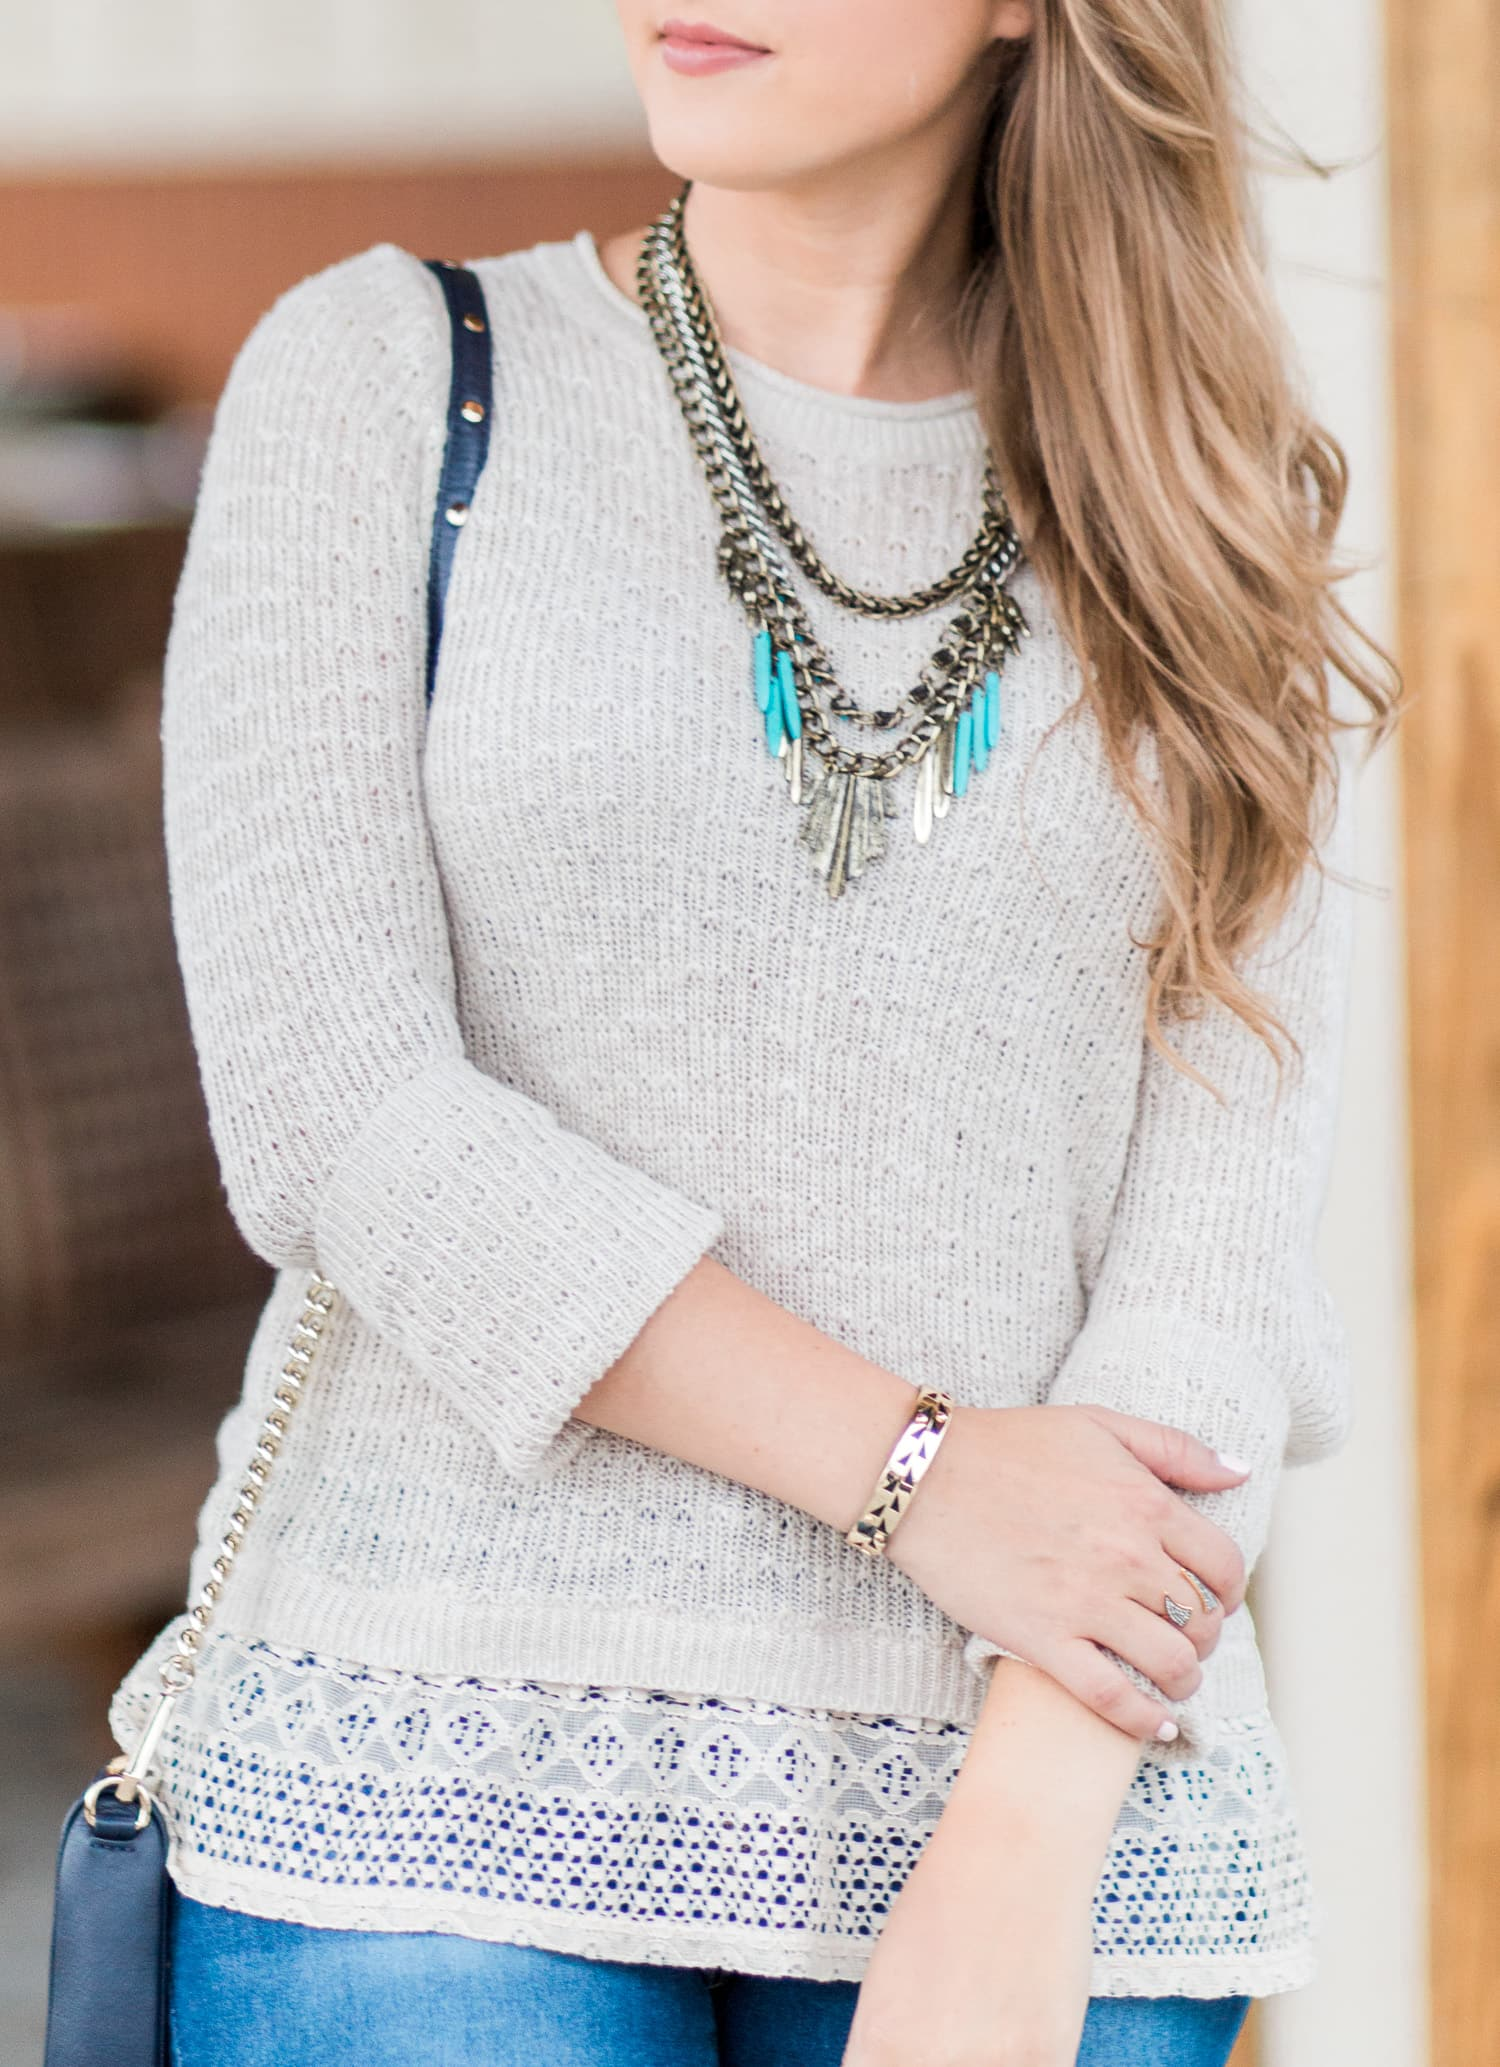 Cream sweater with lace ruffle, destroyed denim jeans, navy crossbody bag, and antiqued gold and turquoise statement necklace styled by blogger Ashley Brooke Nicholas. Click through this image to see this cute fall outfit idea + learn where to buy each item.